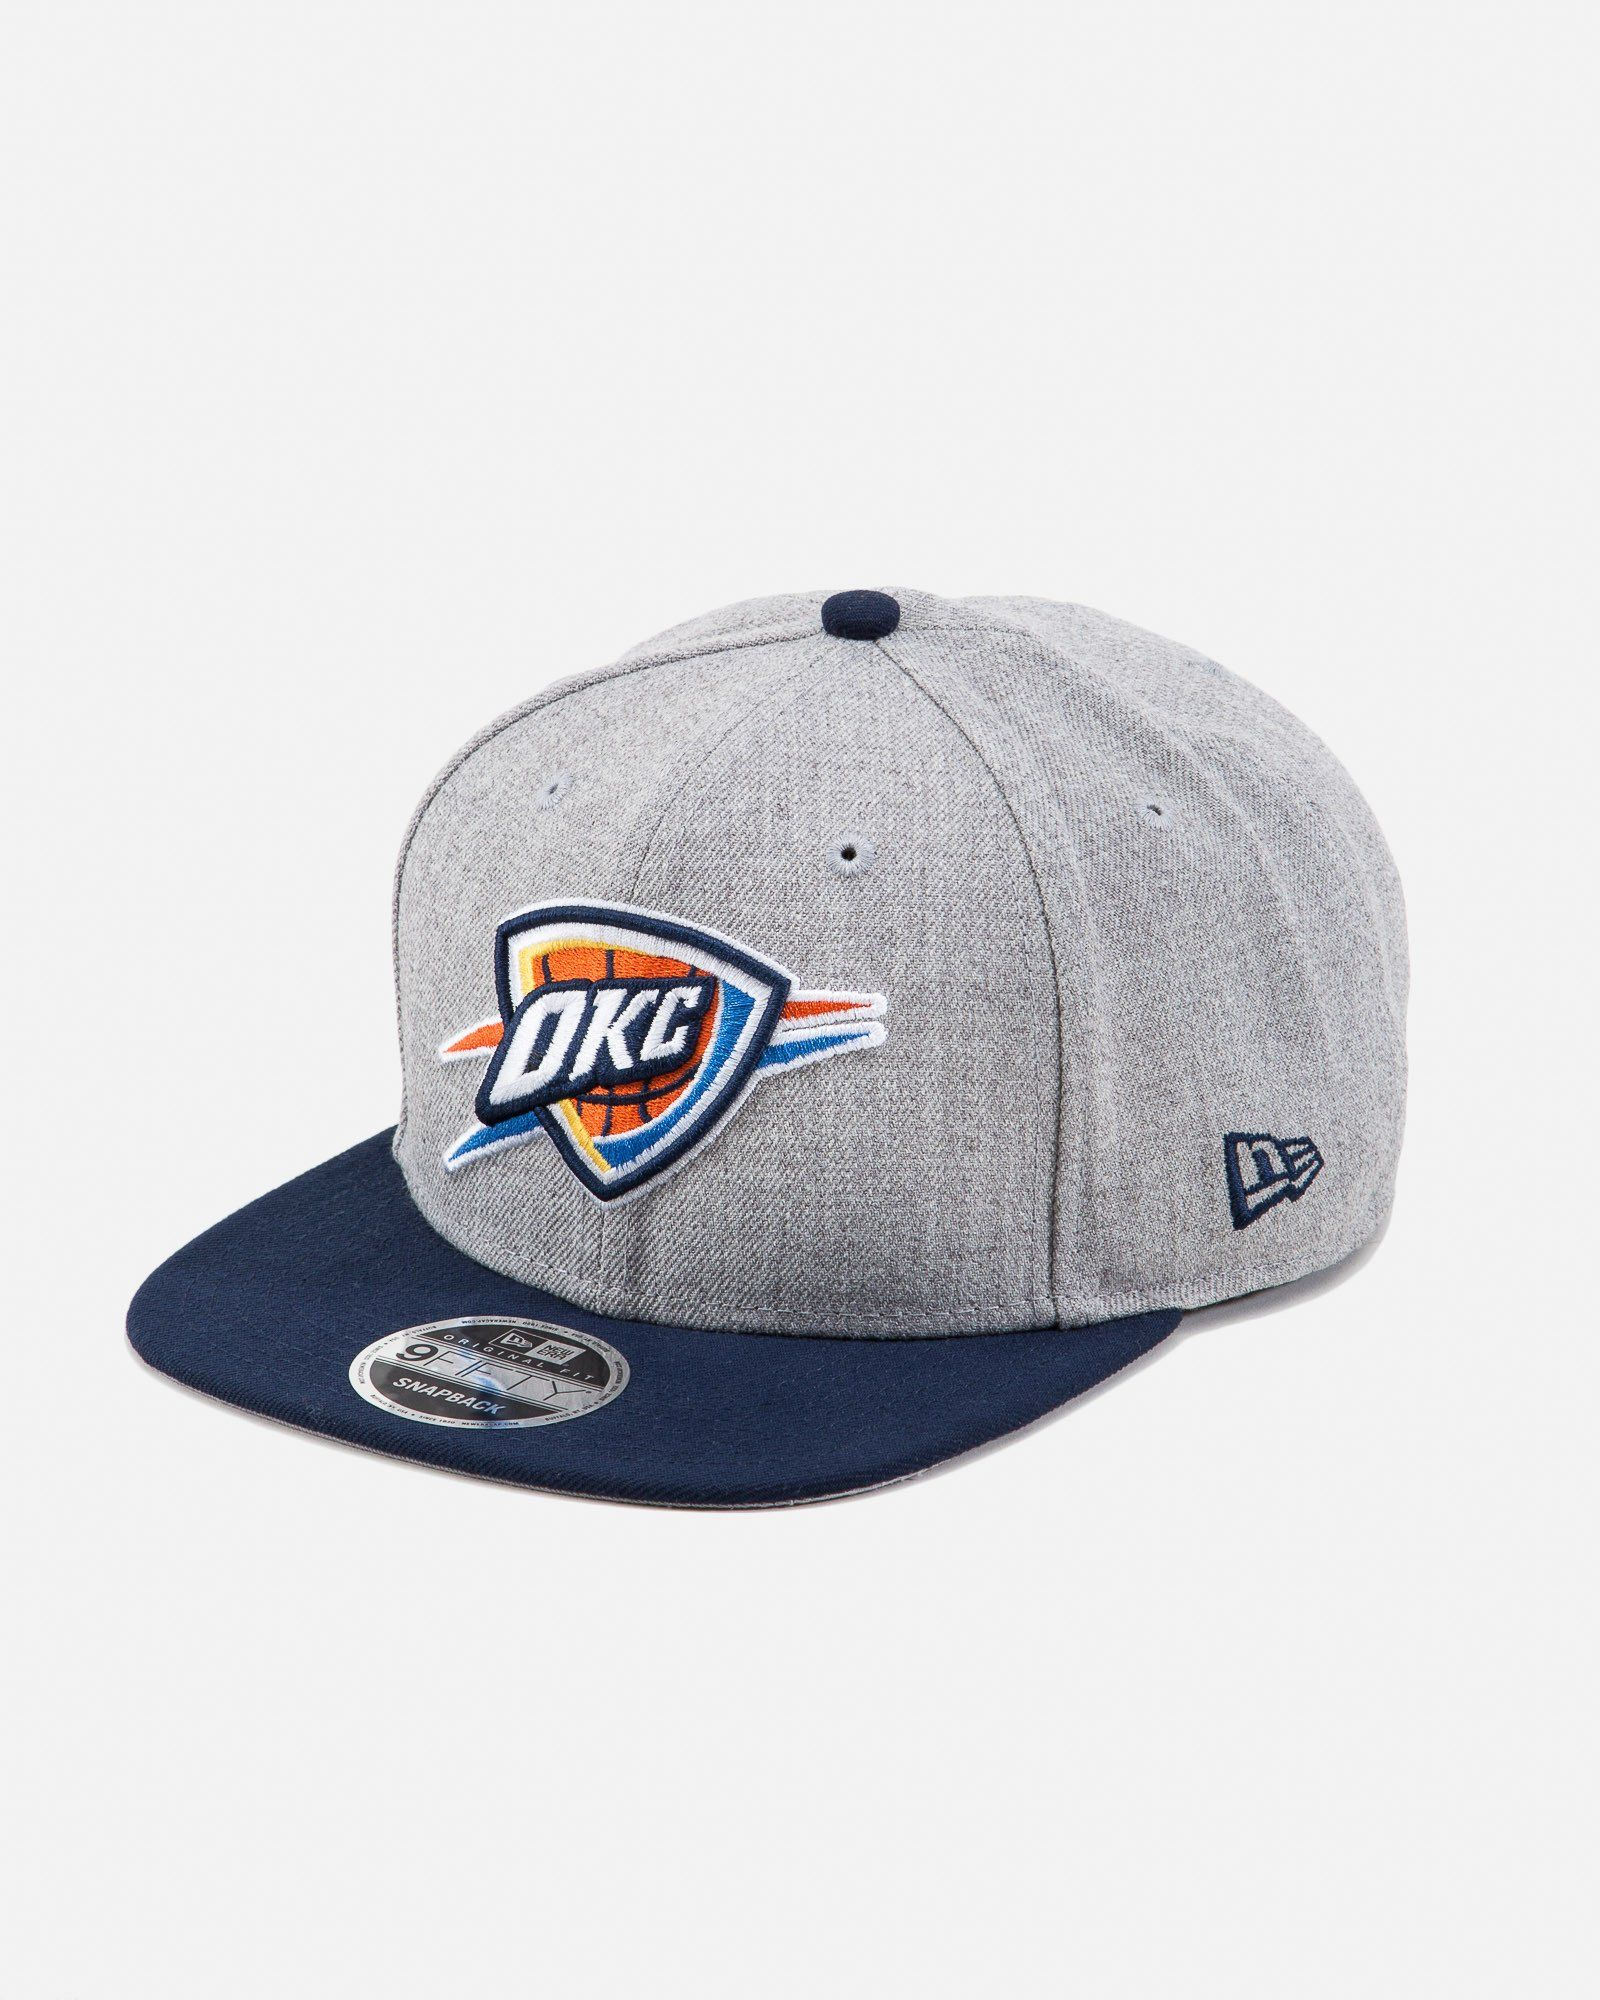 10a677e95df New Era Oklahoma City Thunder 9FIFTY Snapback Hat Grey